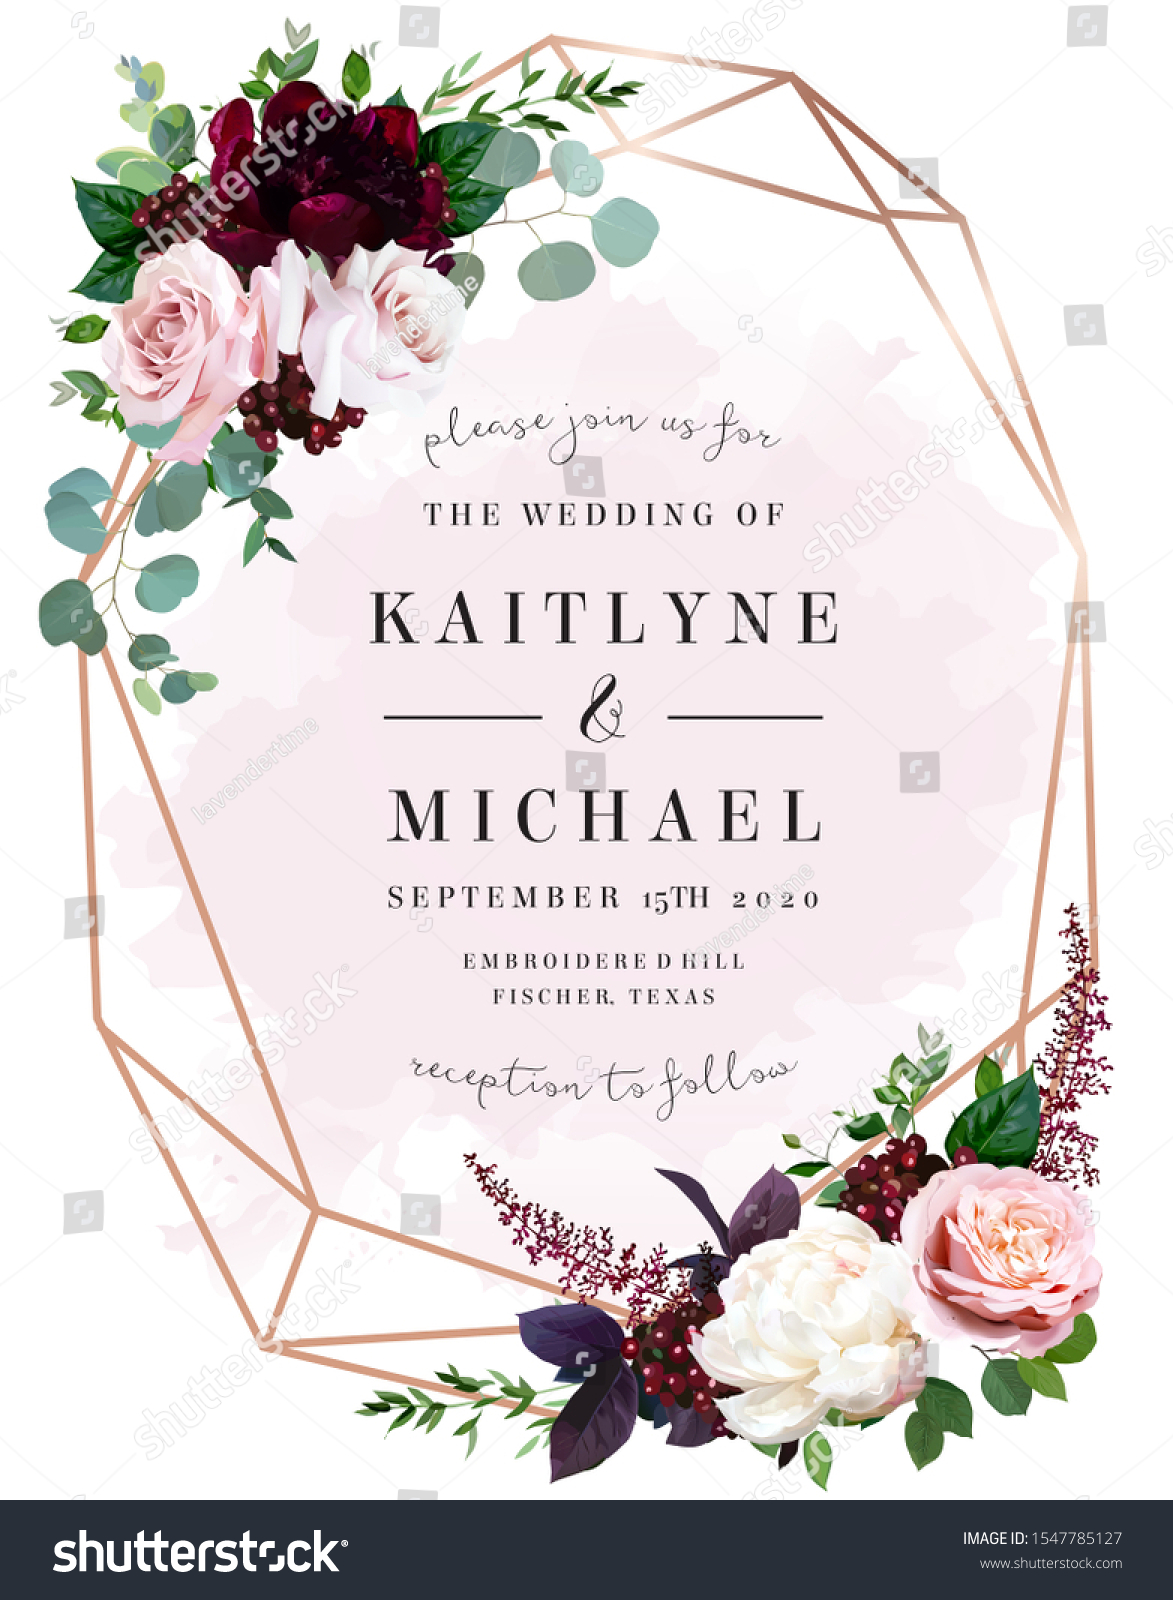 Luxury Fall Flowers Wedding Vector Bouquet Stock Vector Royalty Free 1547785127